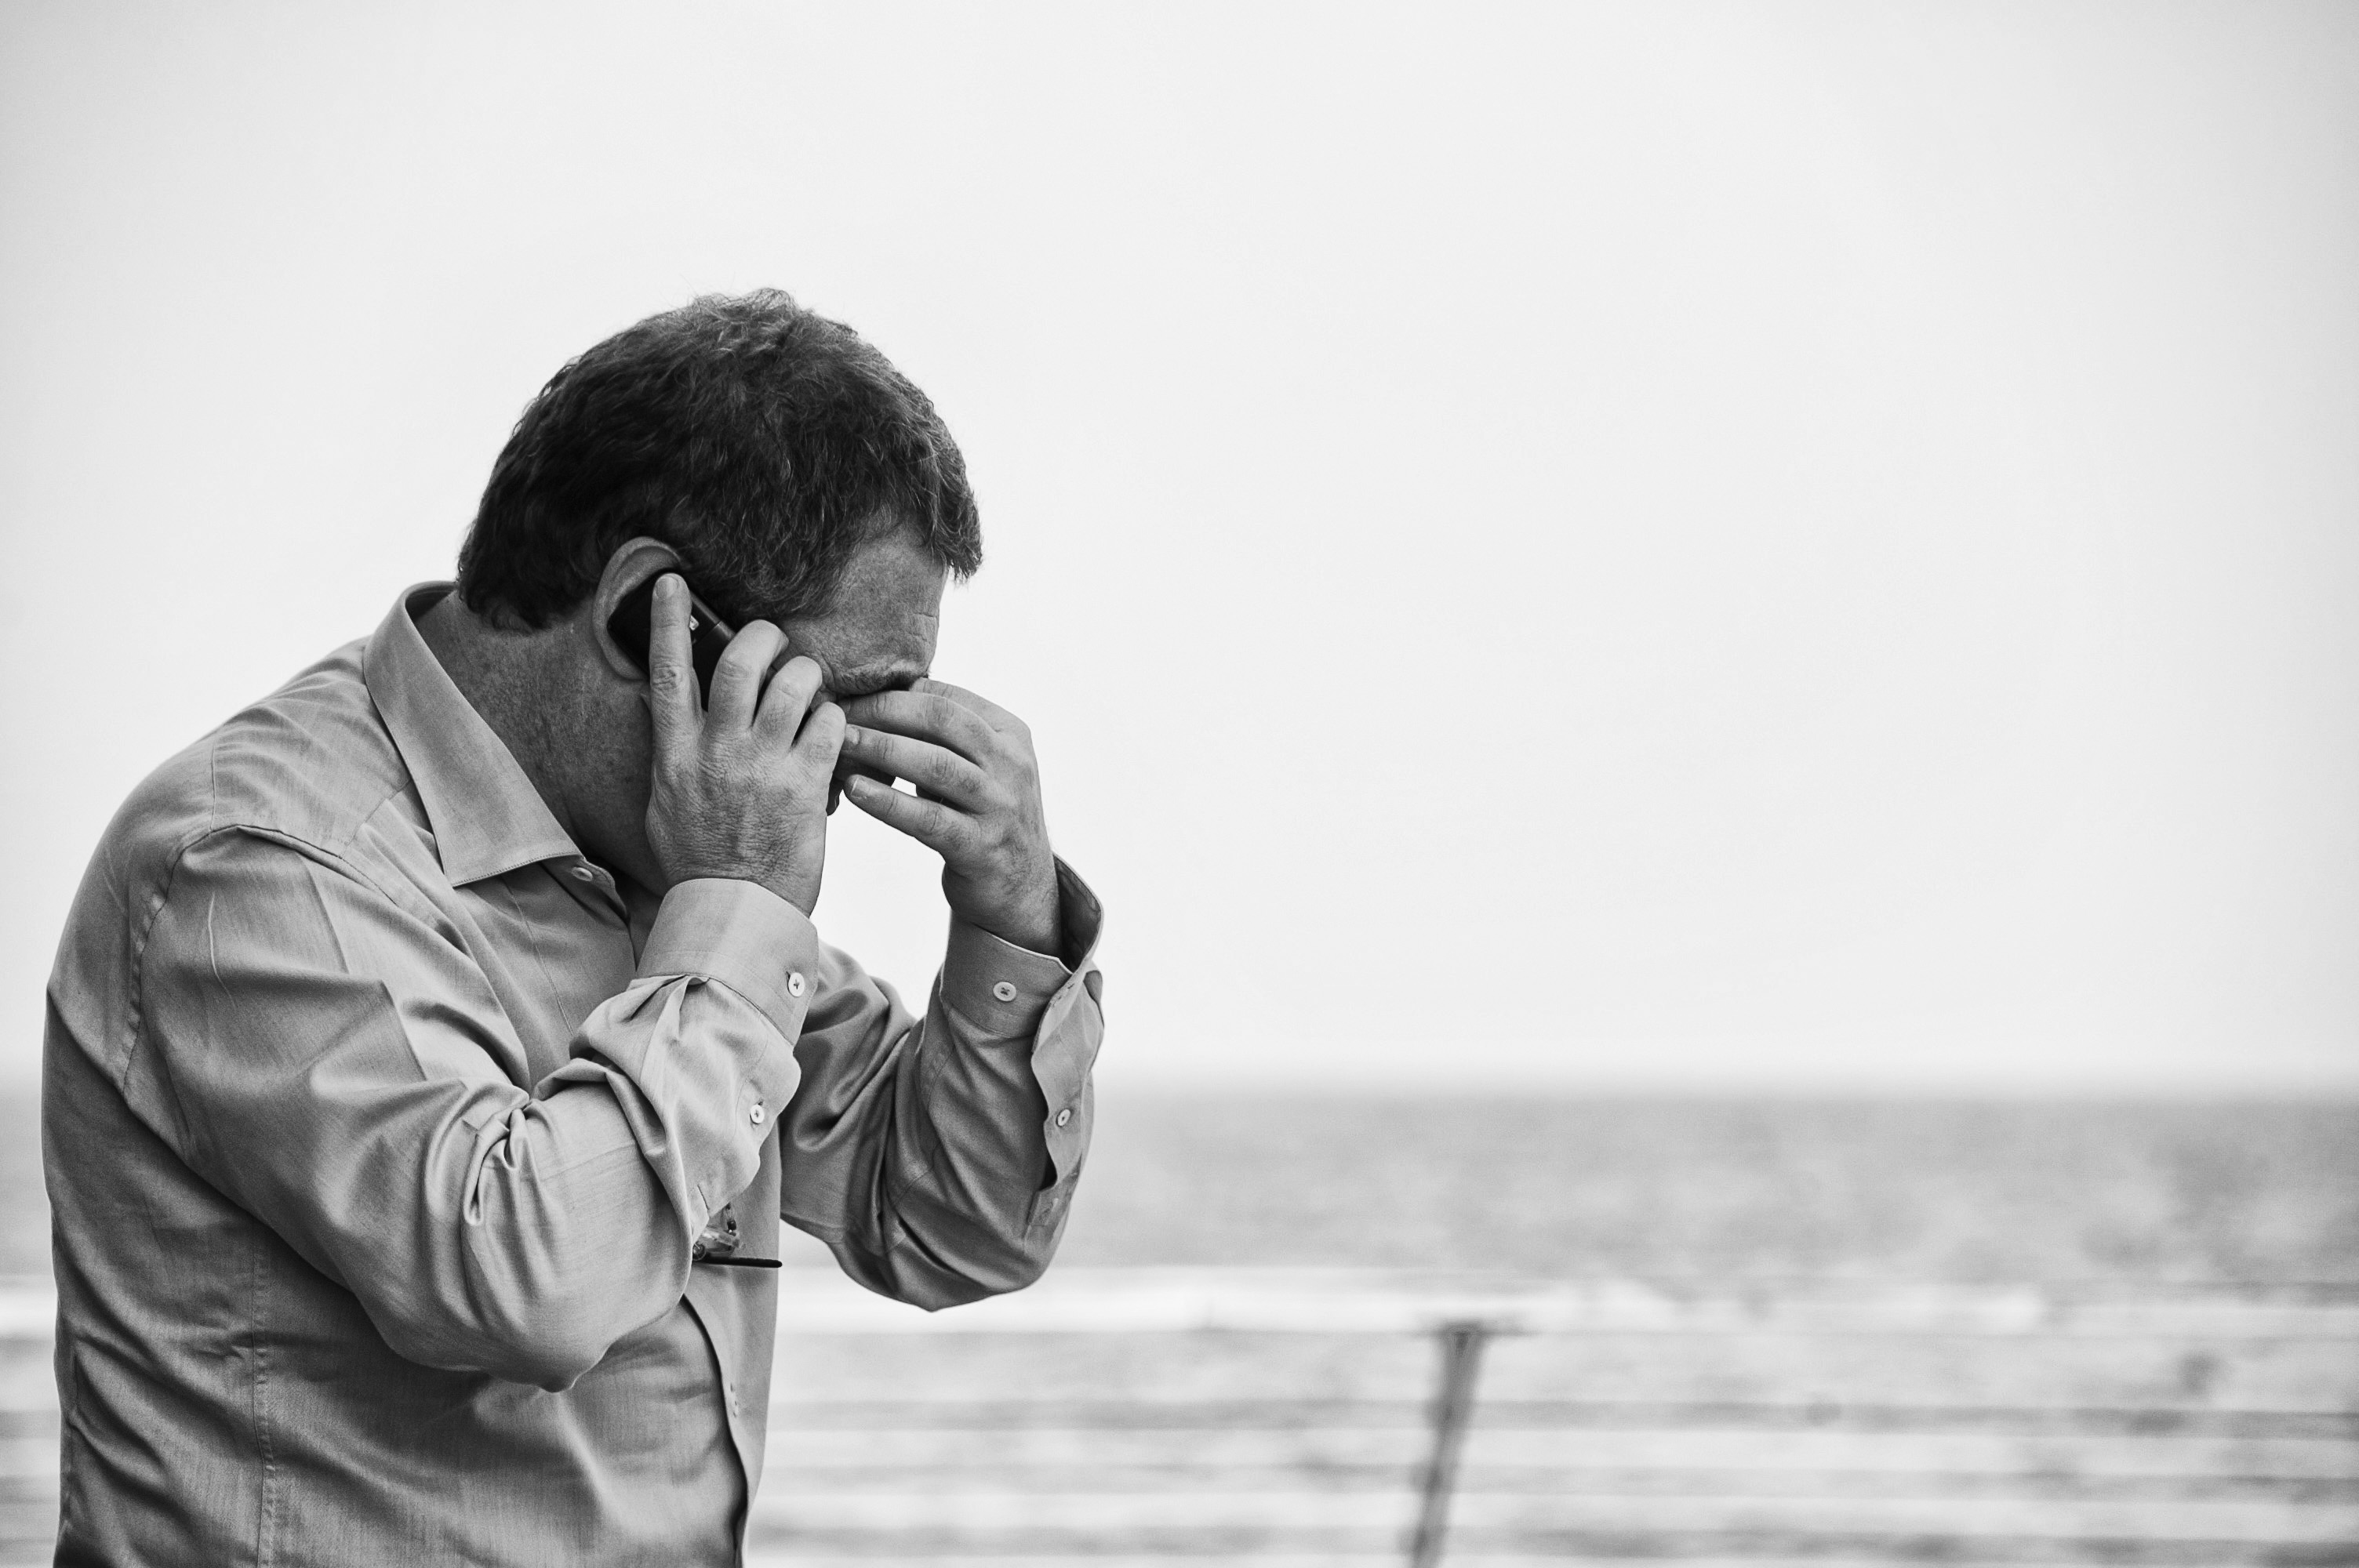 Stressed man on phone